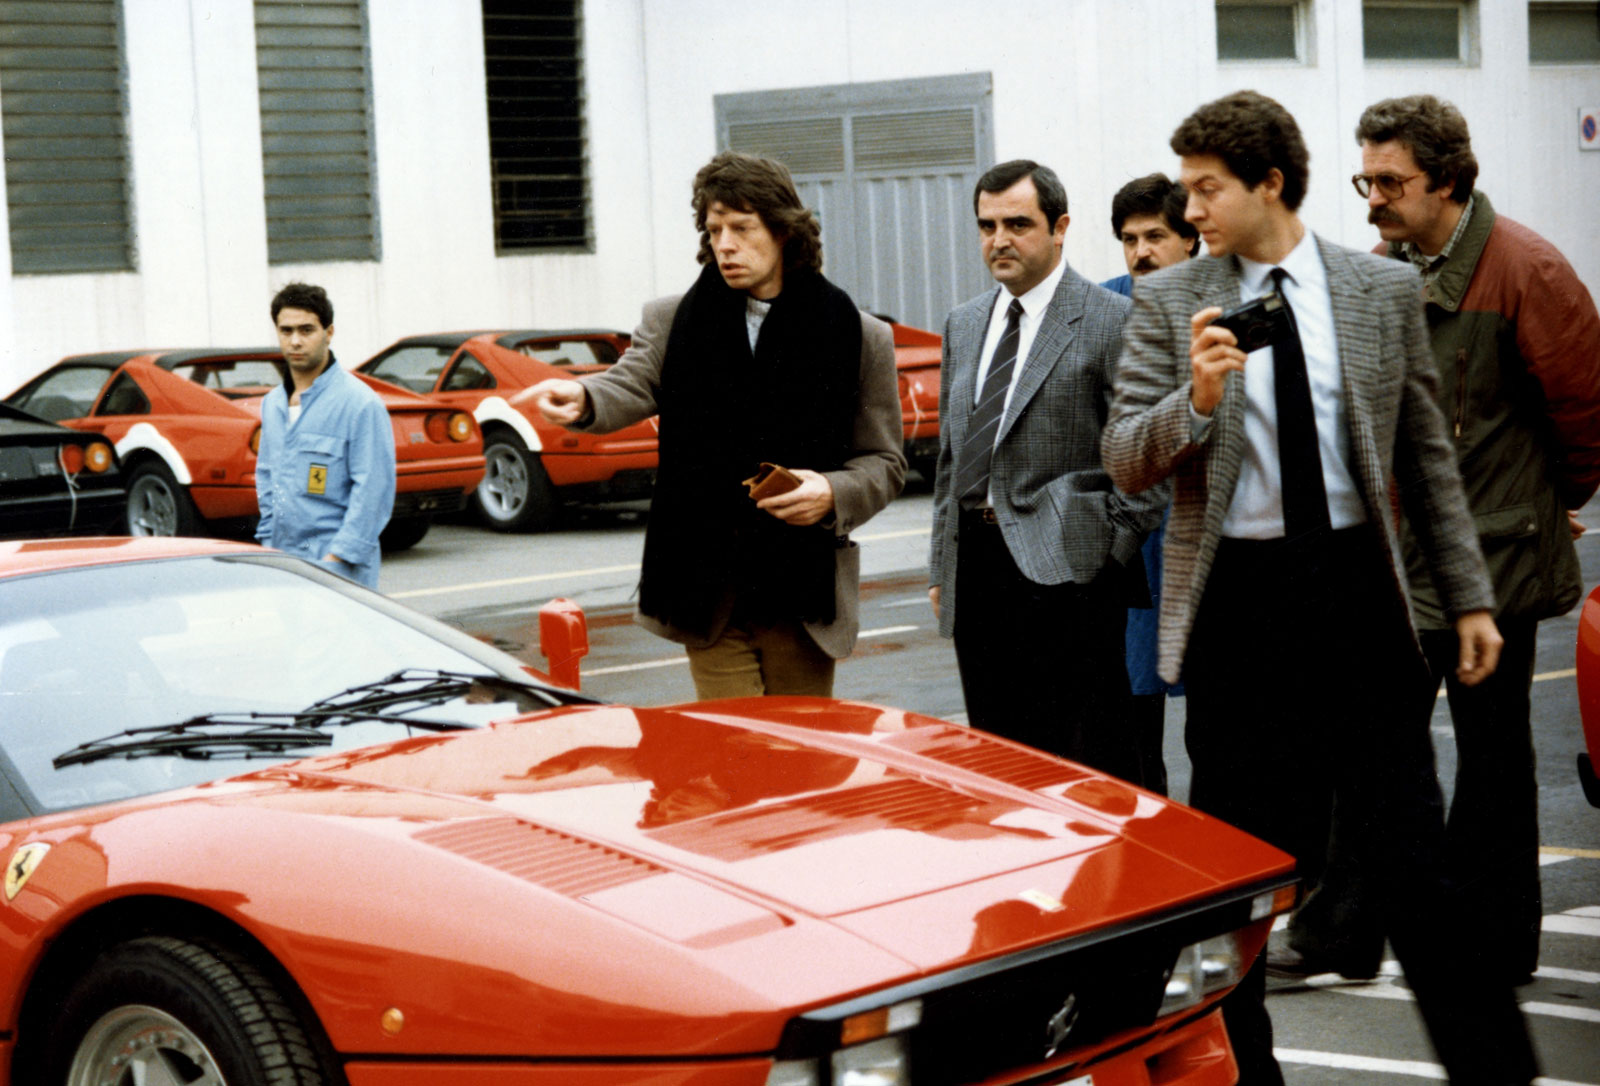 Ruta 66 Octubre 2019 30-Visit-to-Ferrari-Mick-Jagger-leader-of-the-Rolling-Stones-on-the-delivery-of-his-GTO